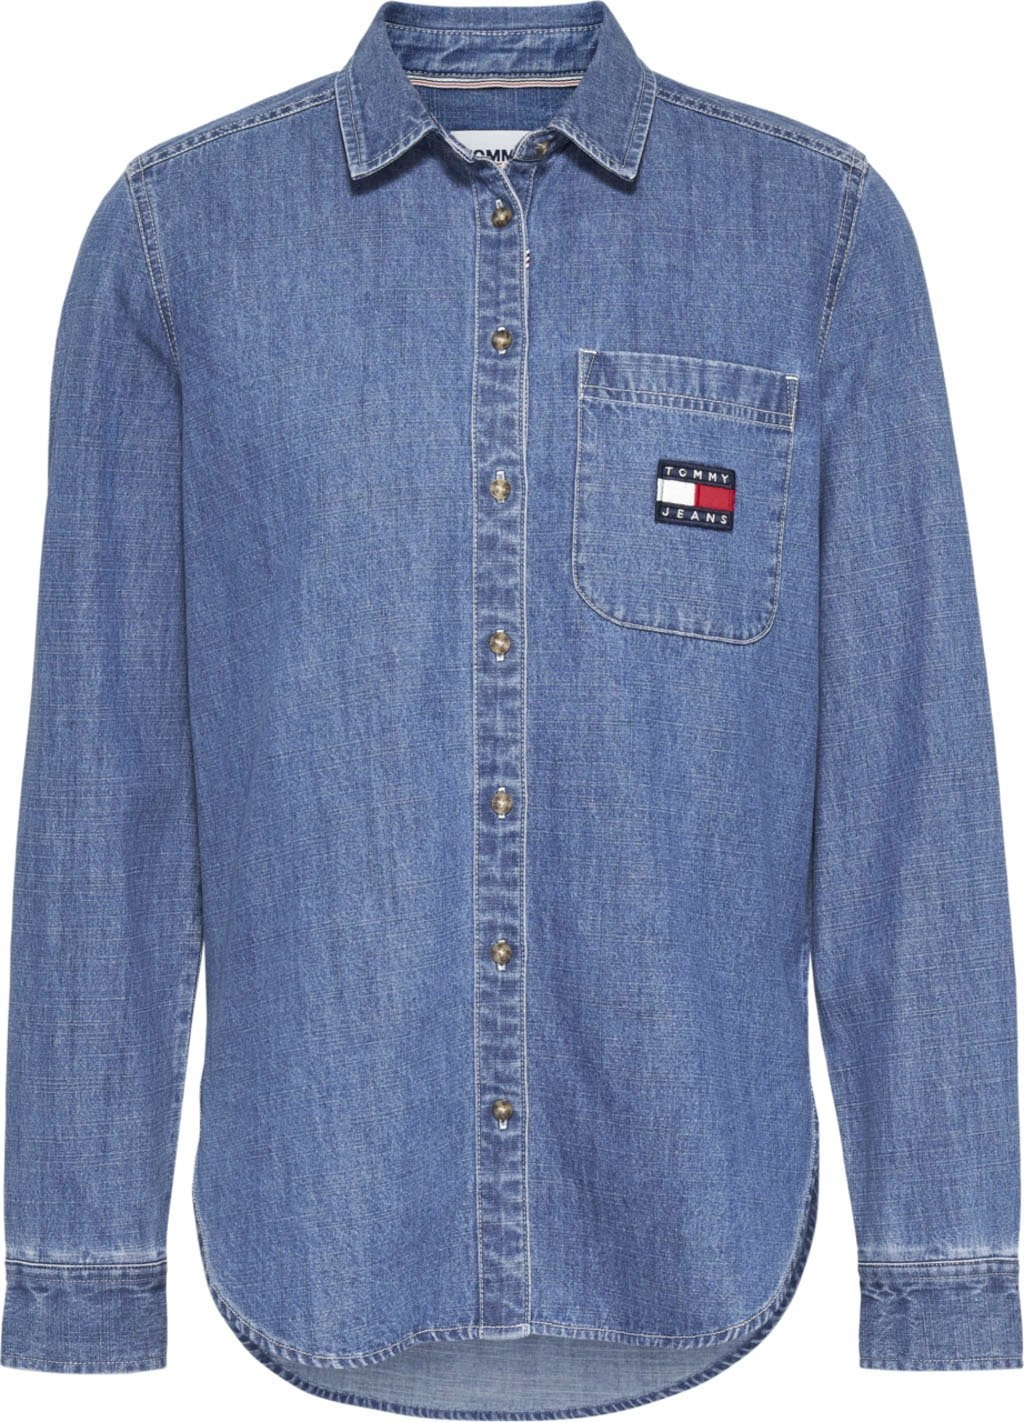 TOMMY JEANS Jeansblouse TJW Regular Chambray Badge Shirt met tommy jeans-logobadge online kopen op otto.nl